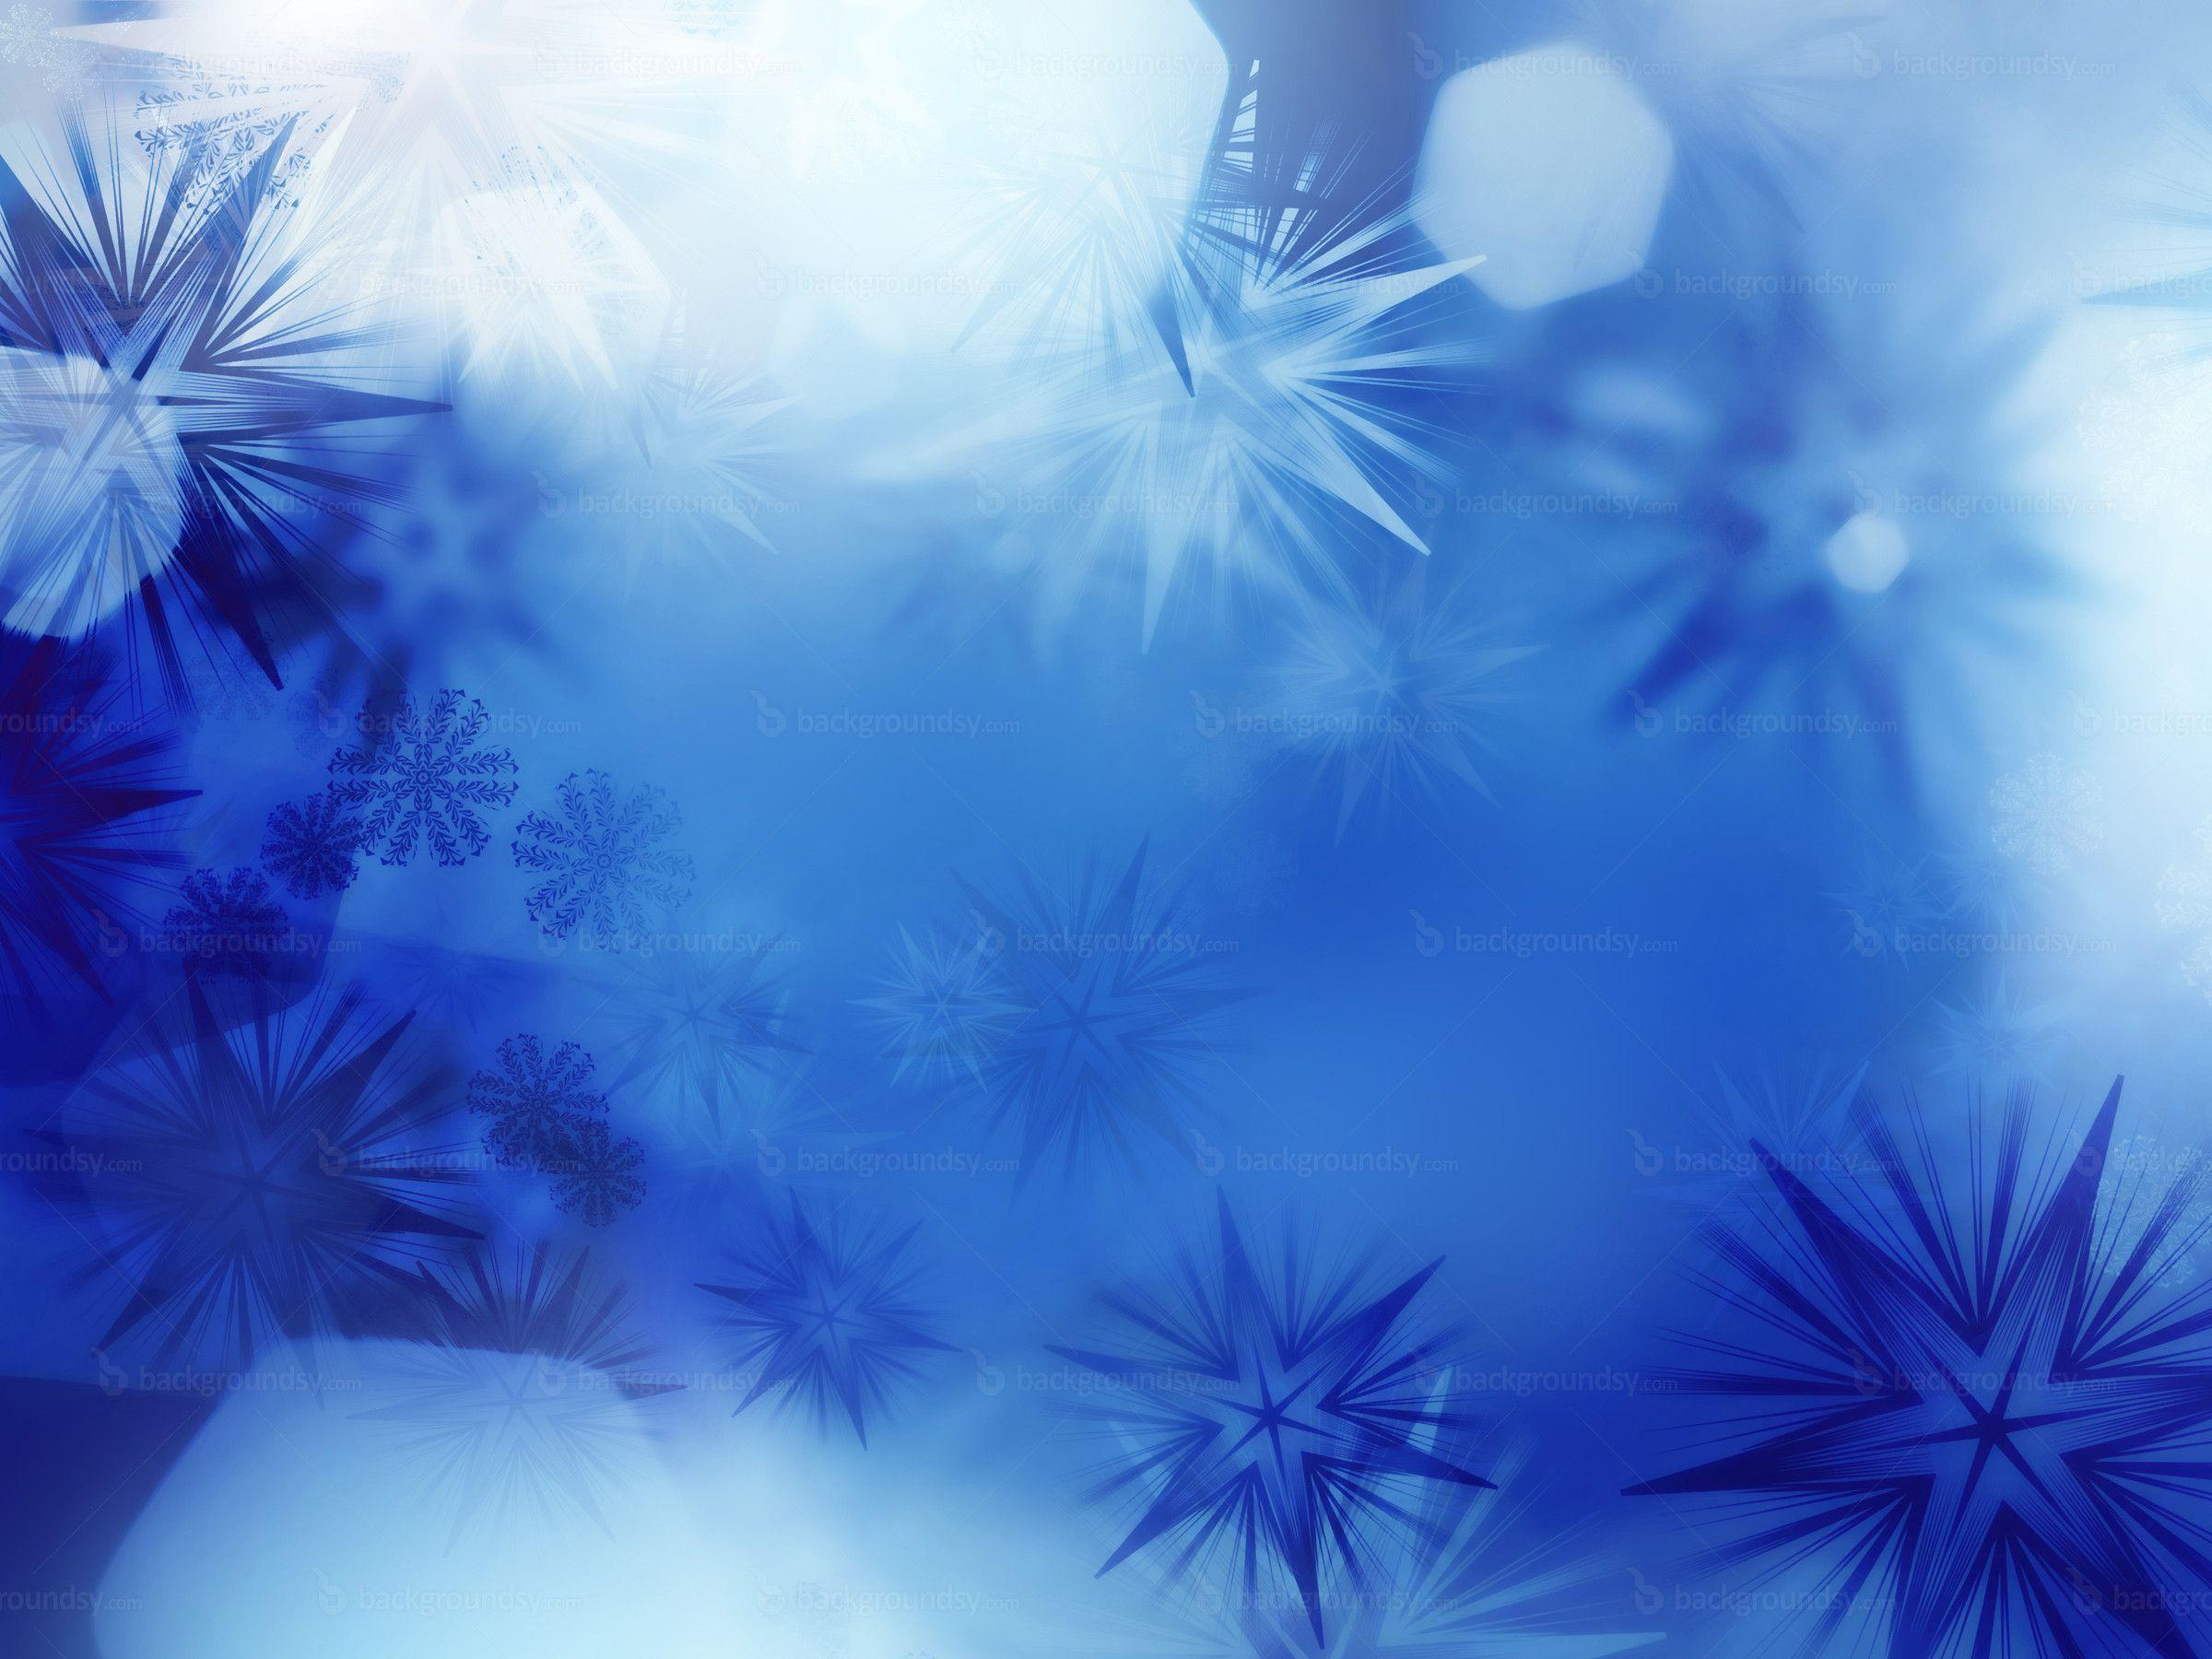 Winter Snow Backgrounds - Wallpaper Cave